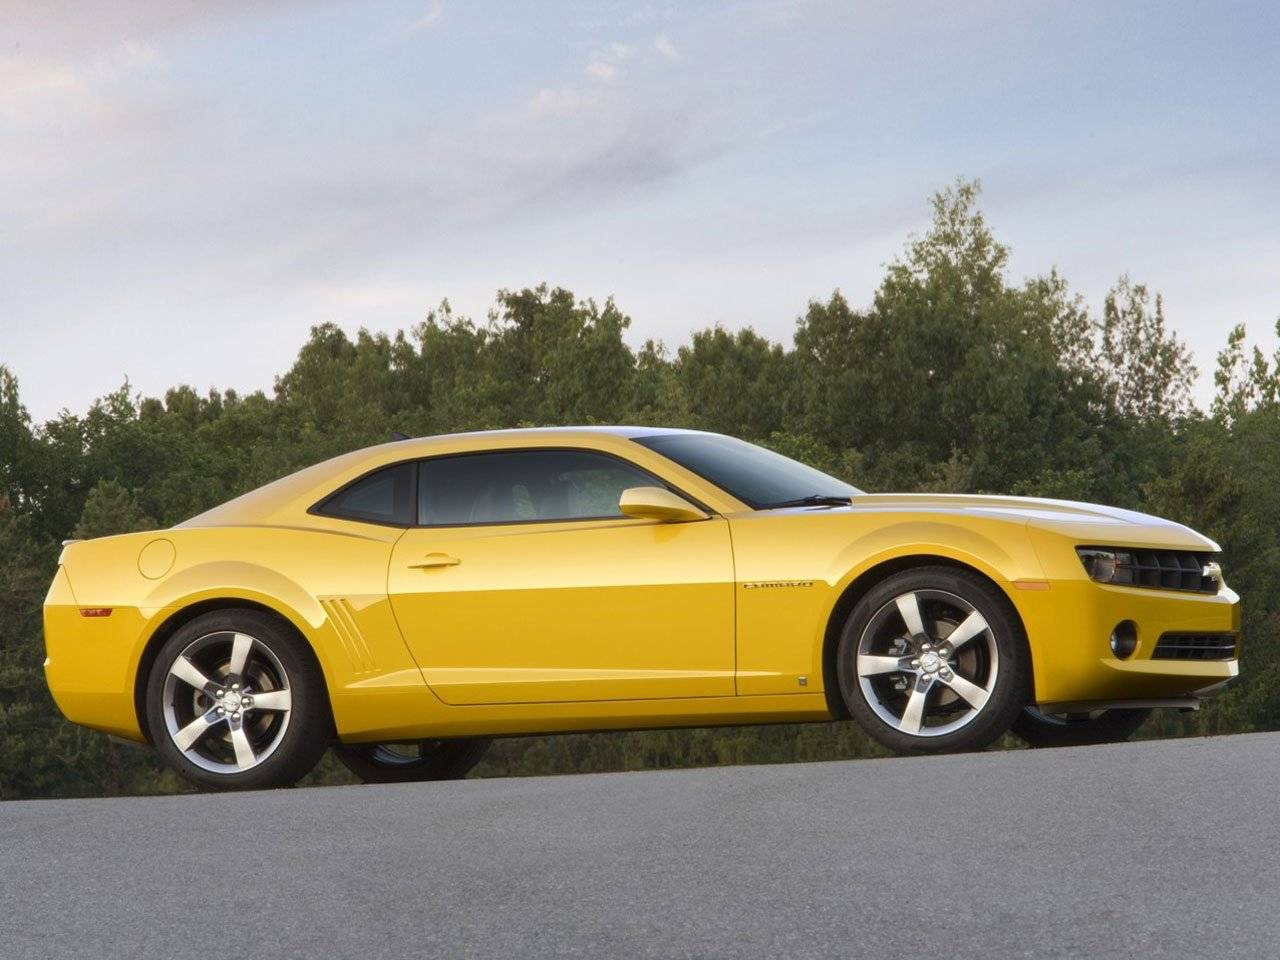 Update Chevrolet Camaro In Detail Autonieuws Autowereld Com